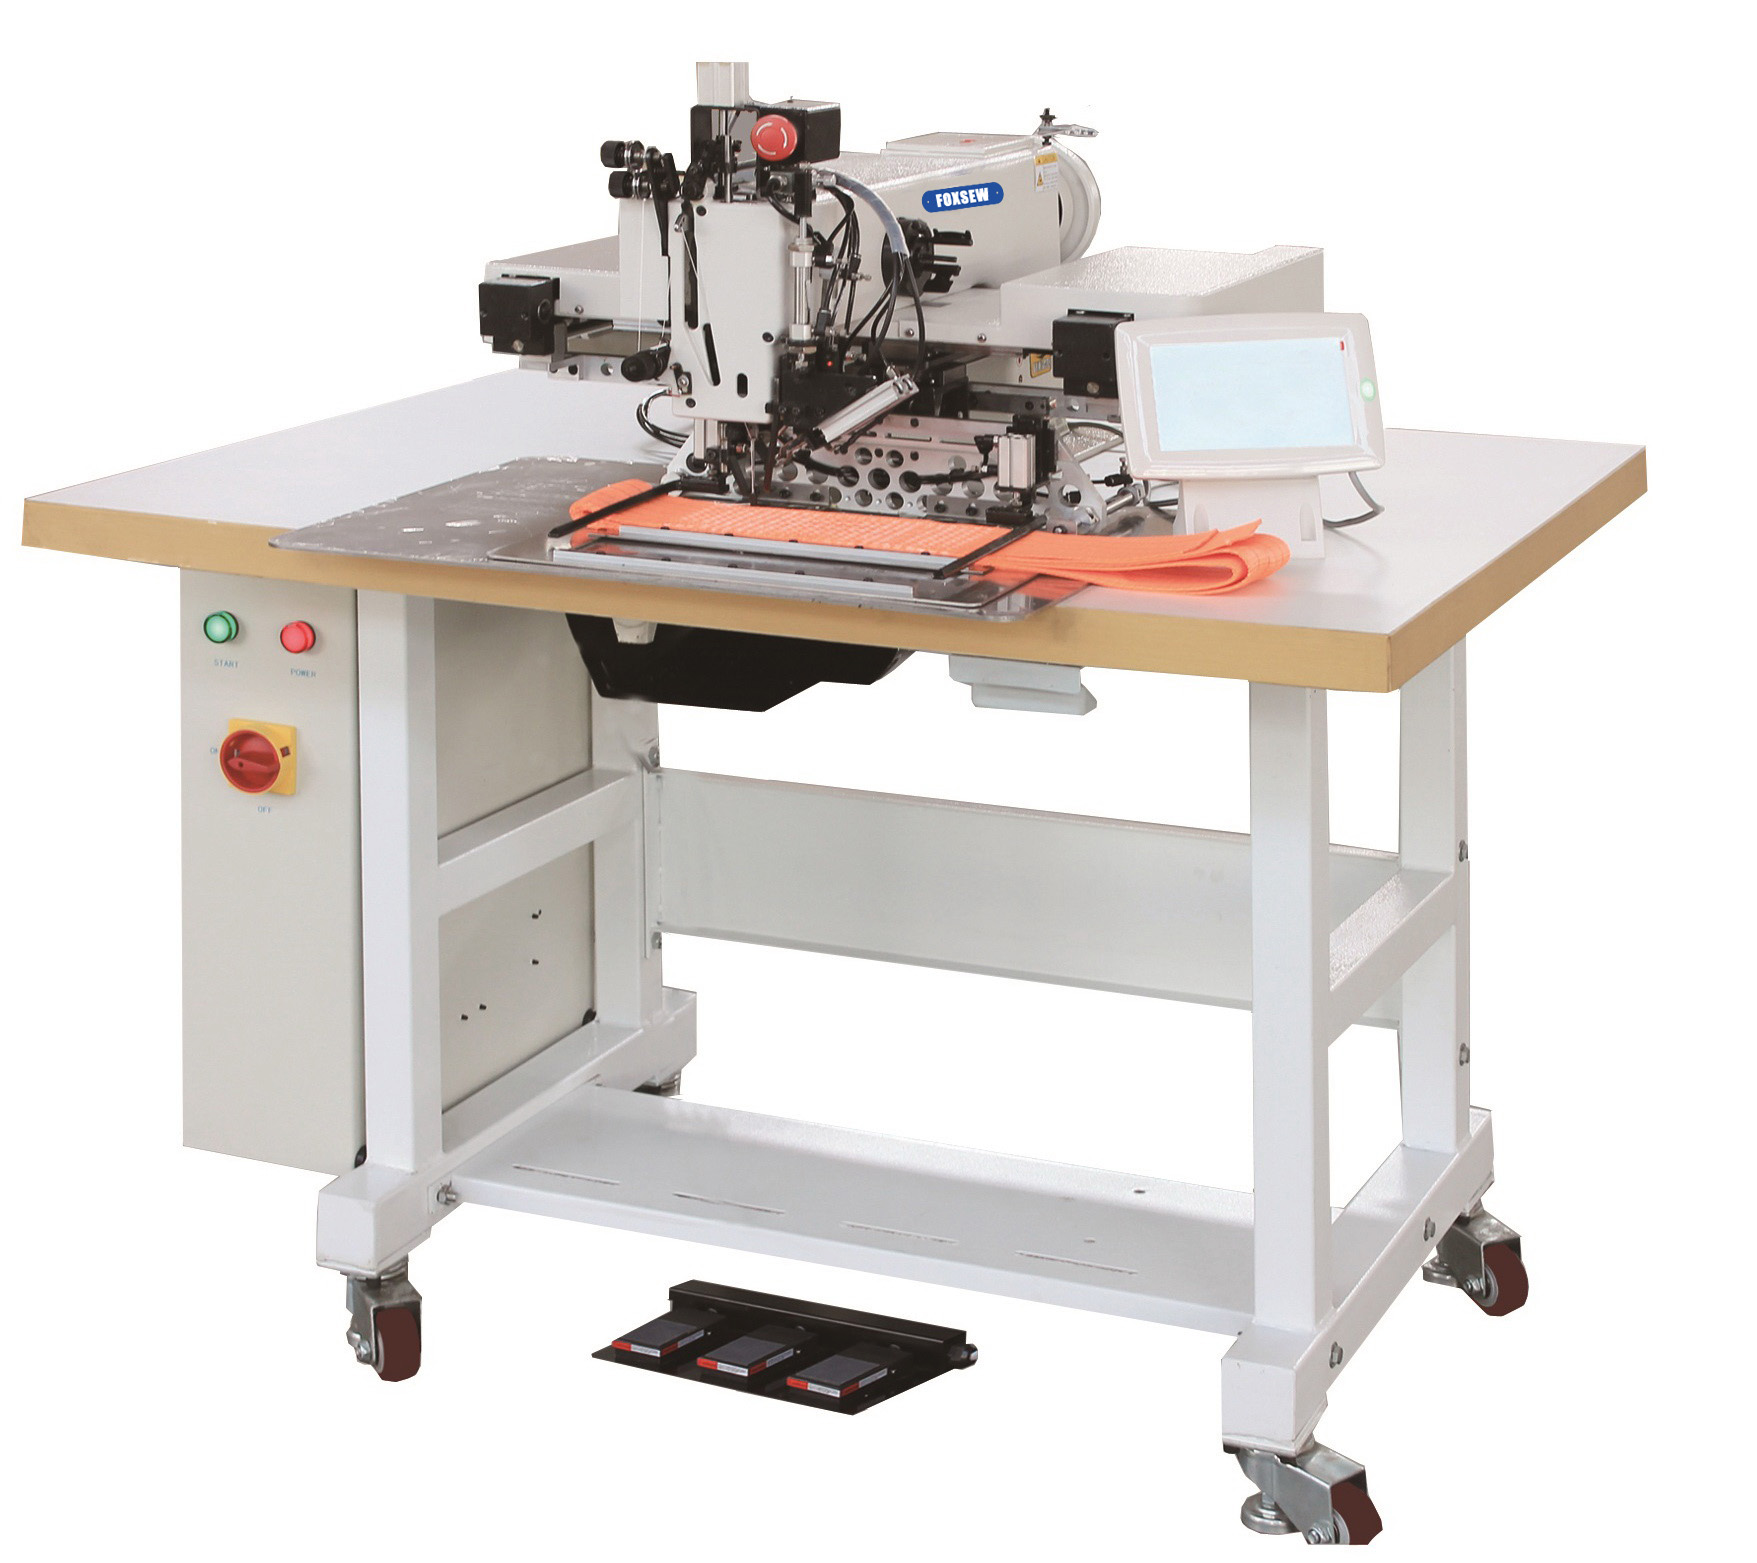 KD-3020H Automatic Programmable Heavy Duty Pattern Sewing Machine